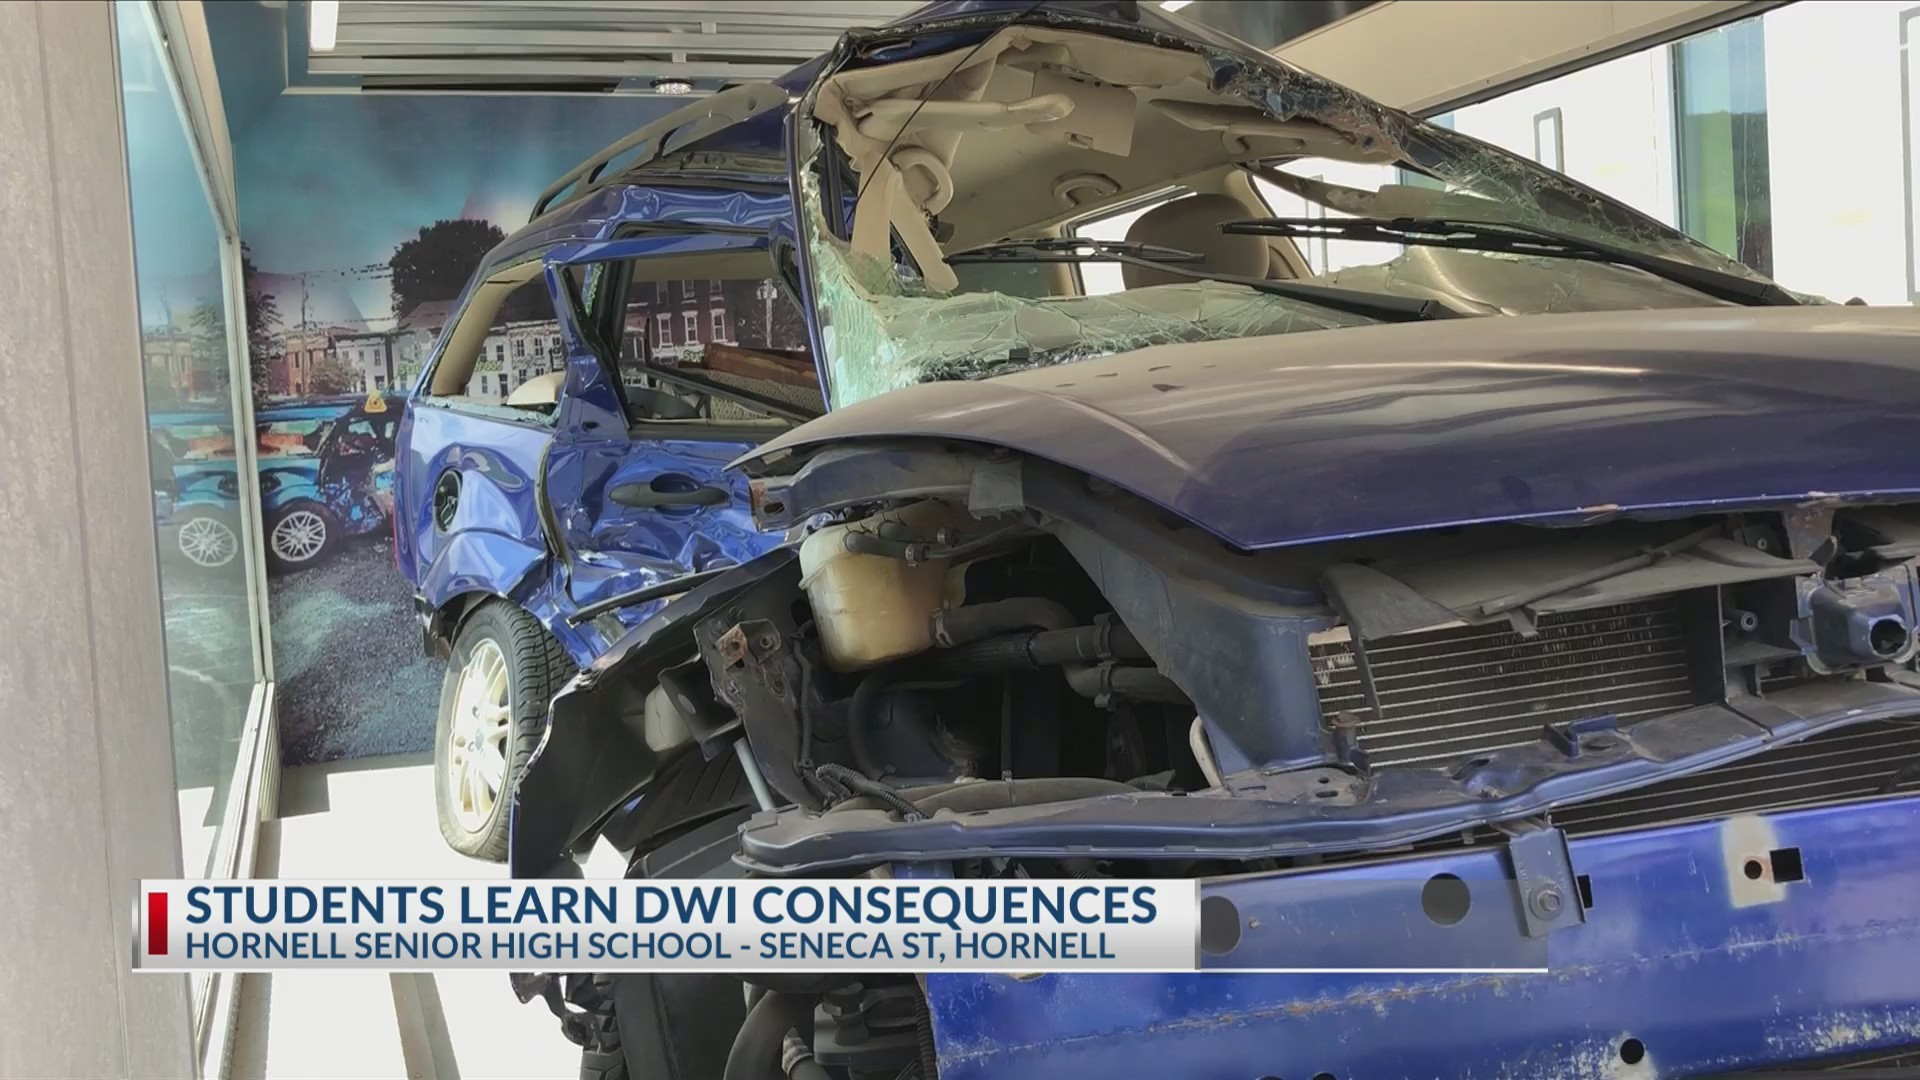 DWI_consequences__local_students_reminde_0_20190517211151